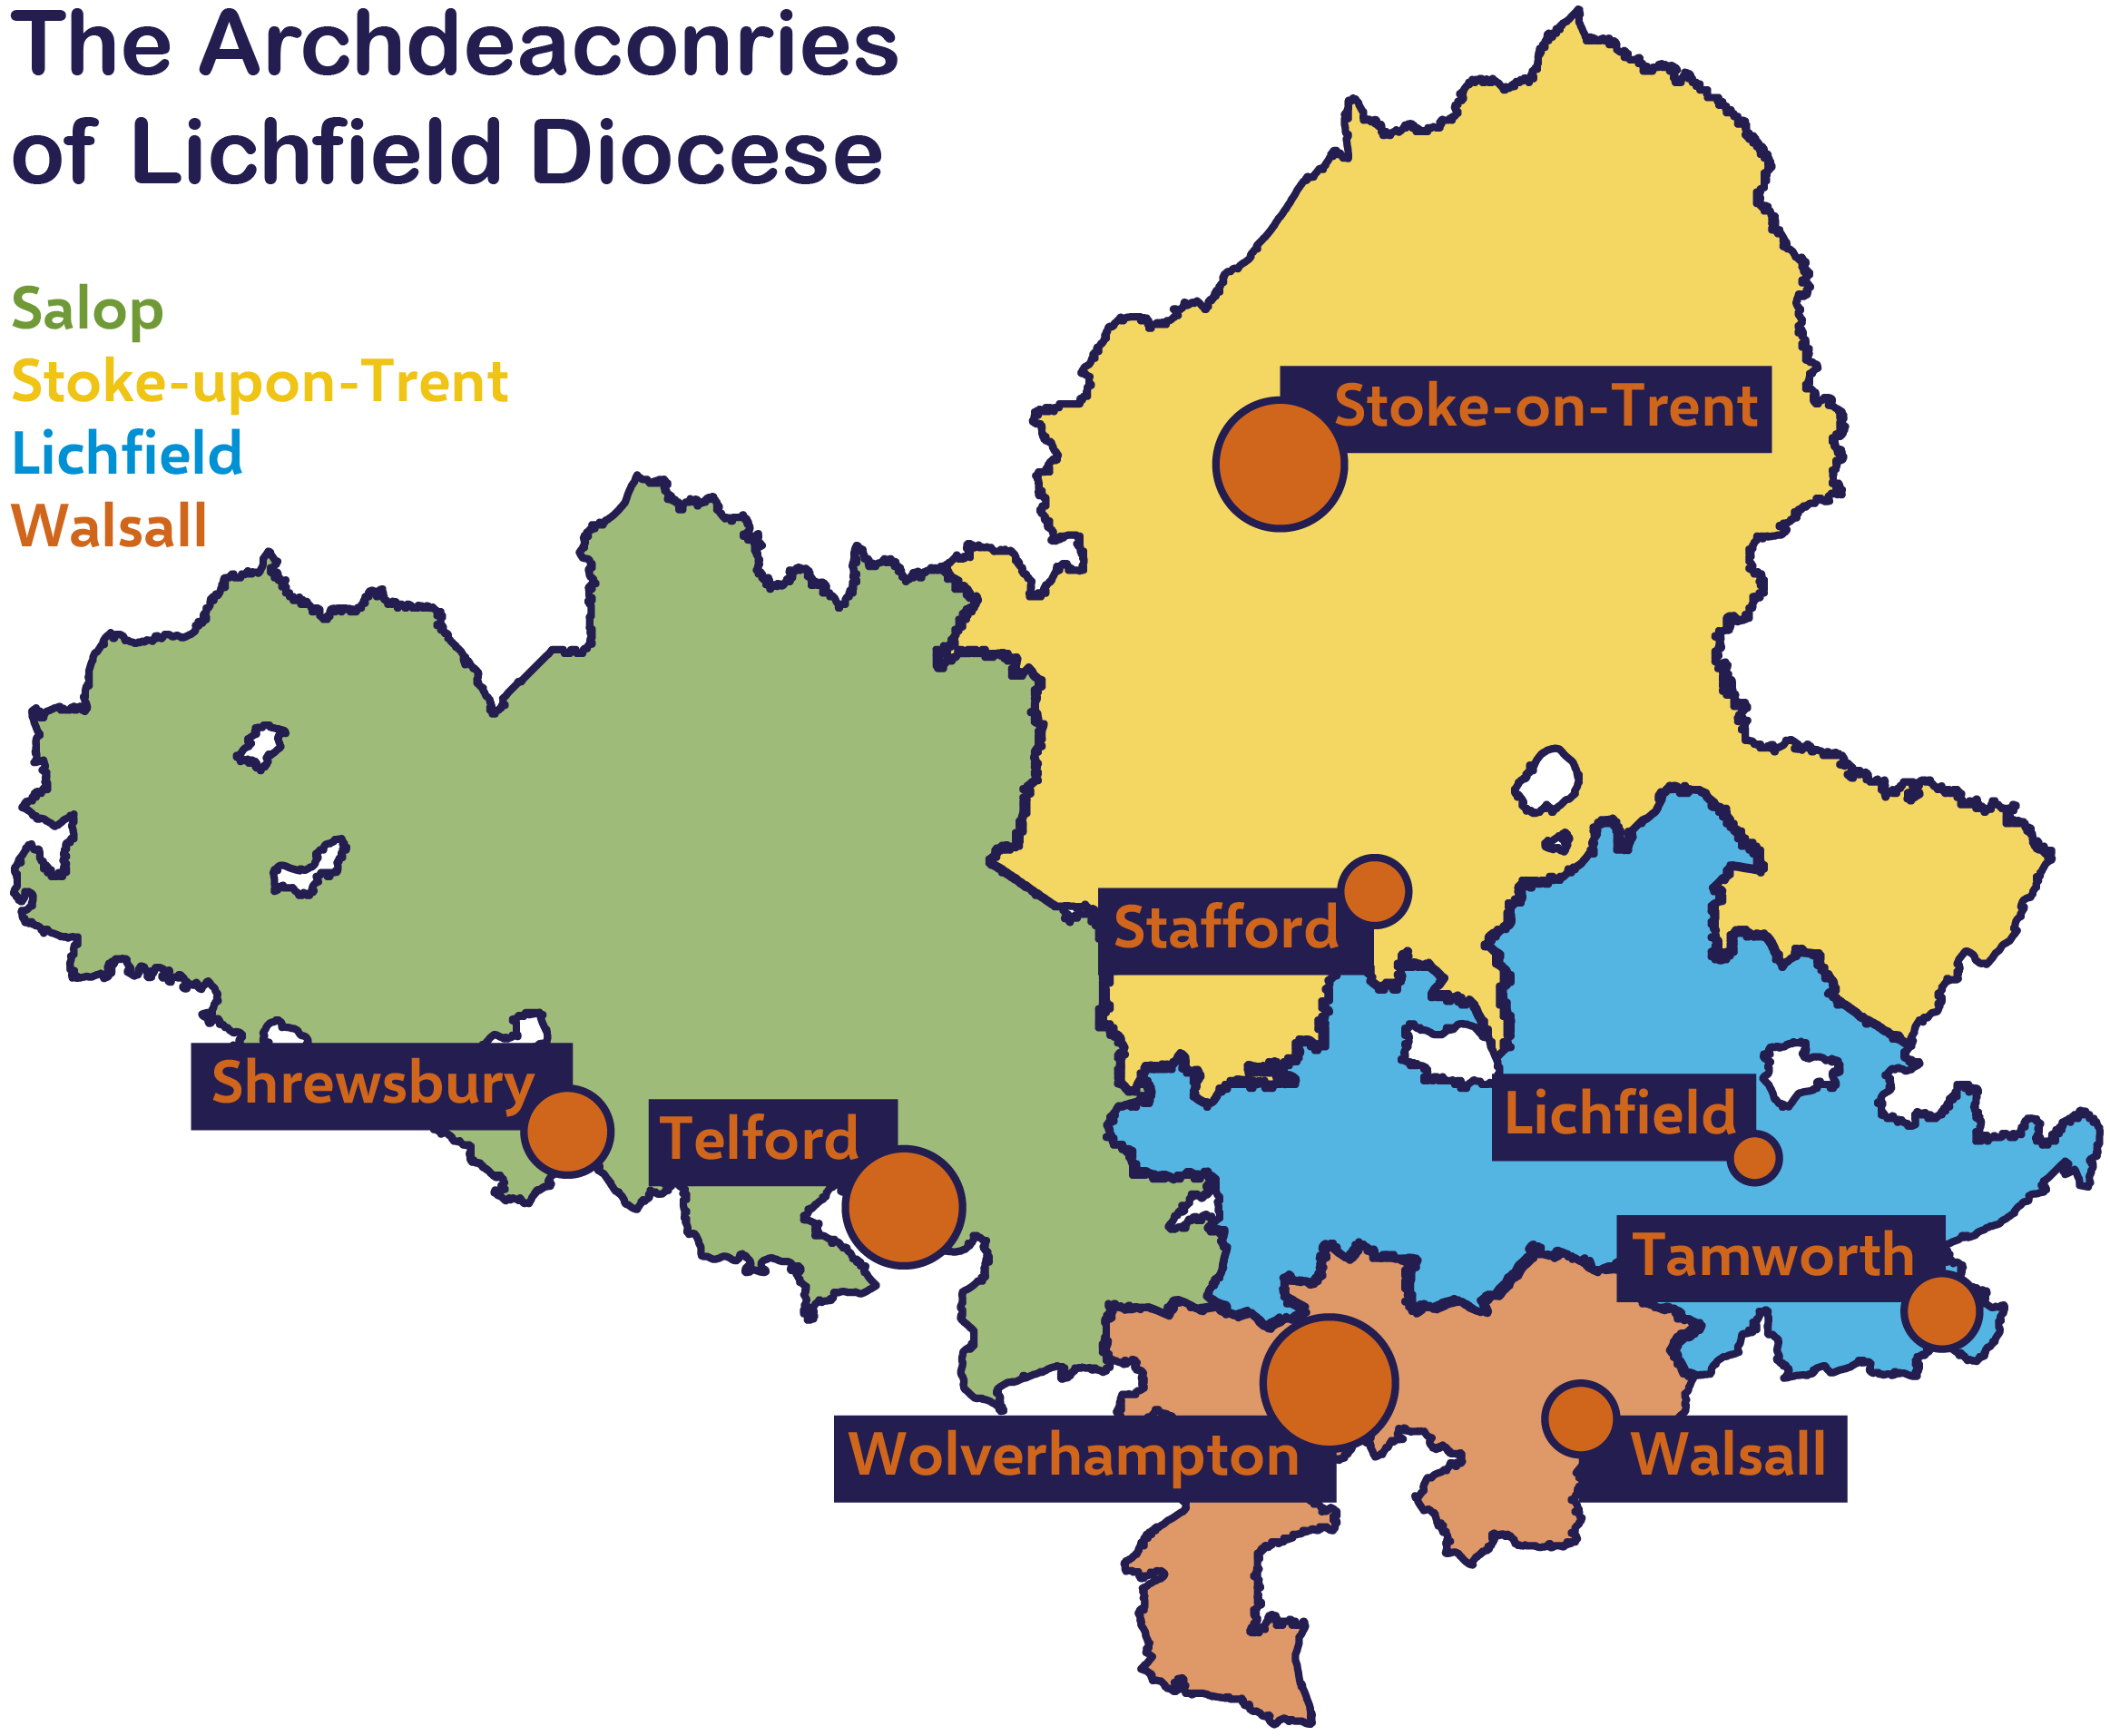 Map showing outline of the four archdeaconries of Lichfield Diocese and key towns